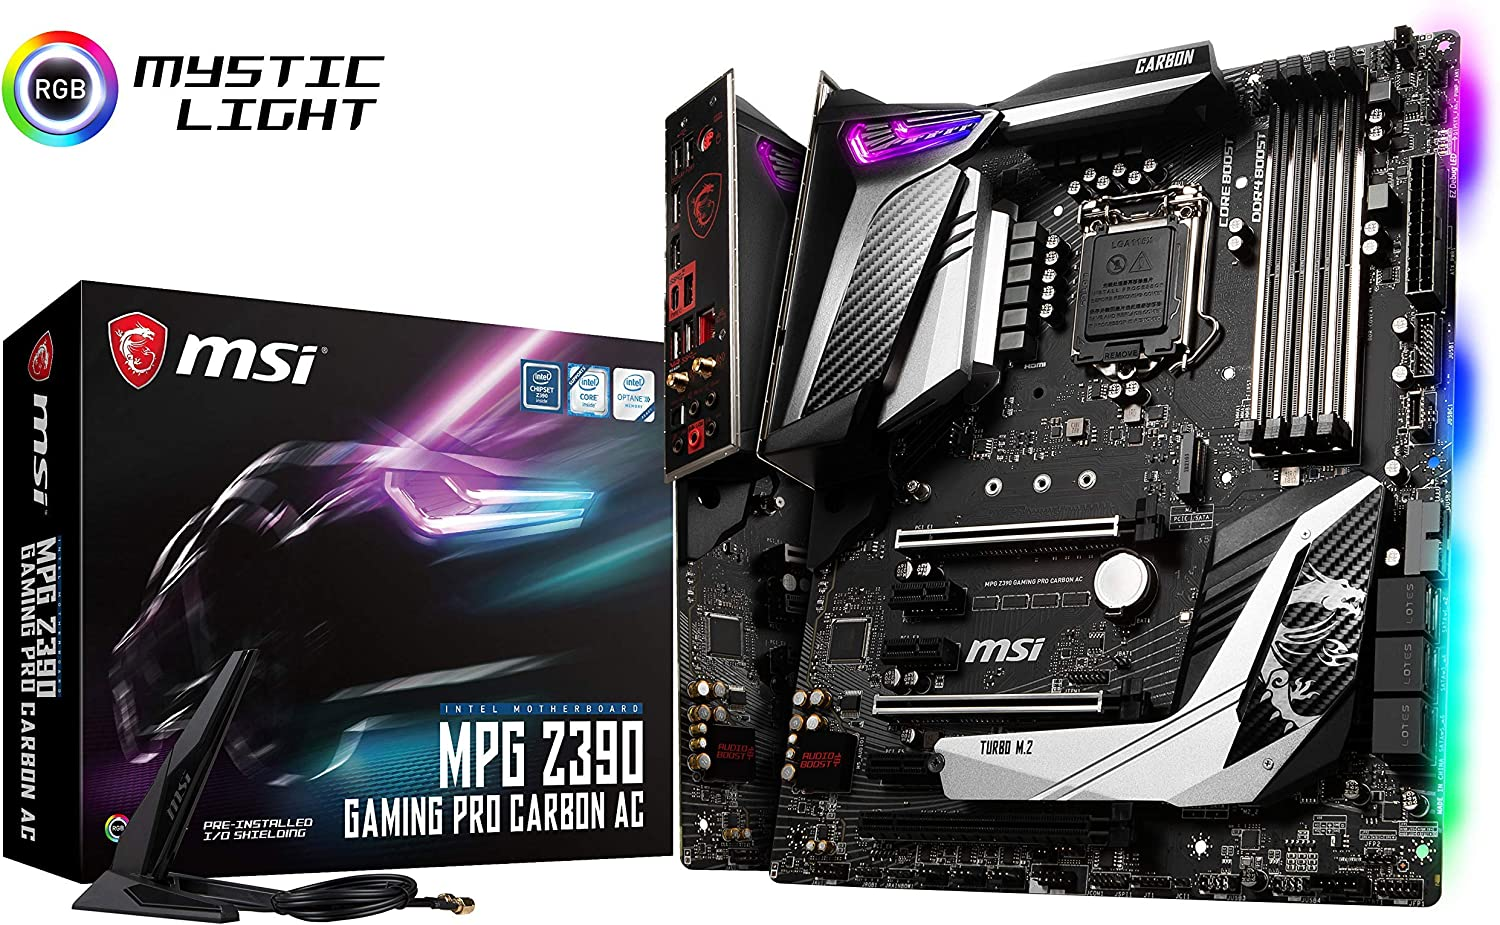 MSI MPG Z390 Gaming PRO Carbon AC LGA1151 (Intel 8th and 9th Gen) M.2 USB 3.1 Gen 2 DDR4 HDMI DP Wi-Fi SLI CFX ATX Z390 Gaming Motherboard (Renewed)